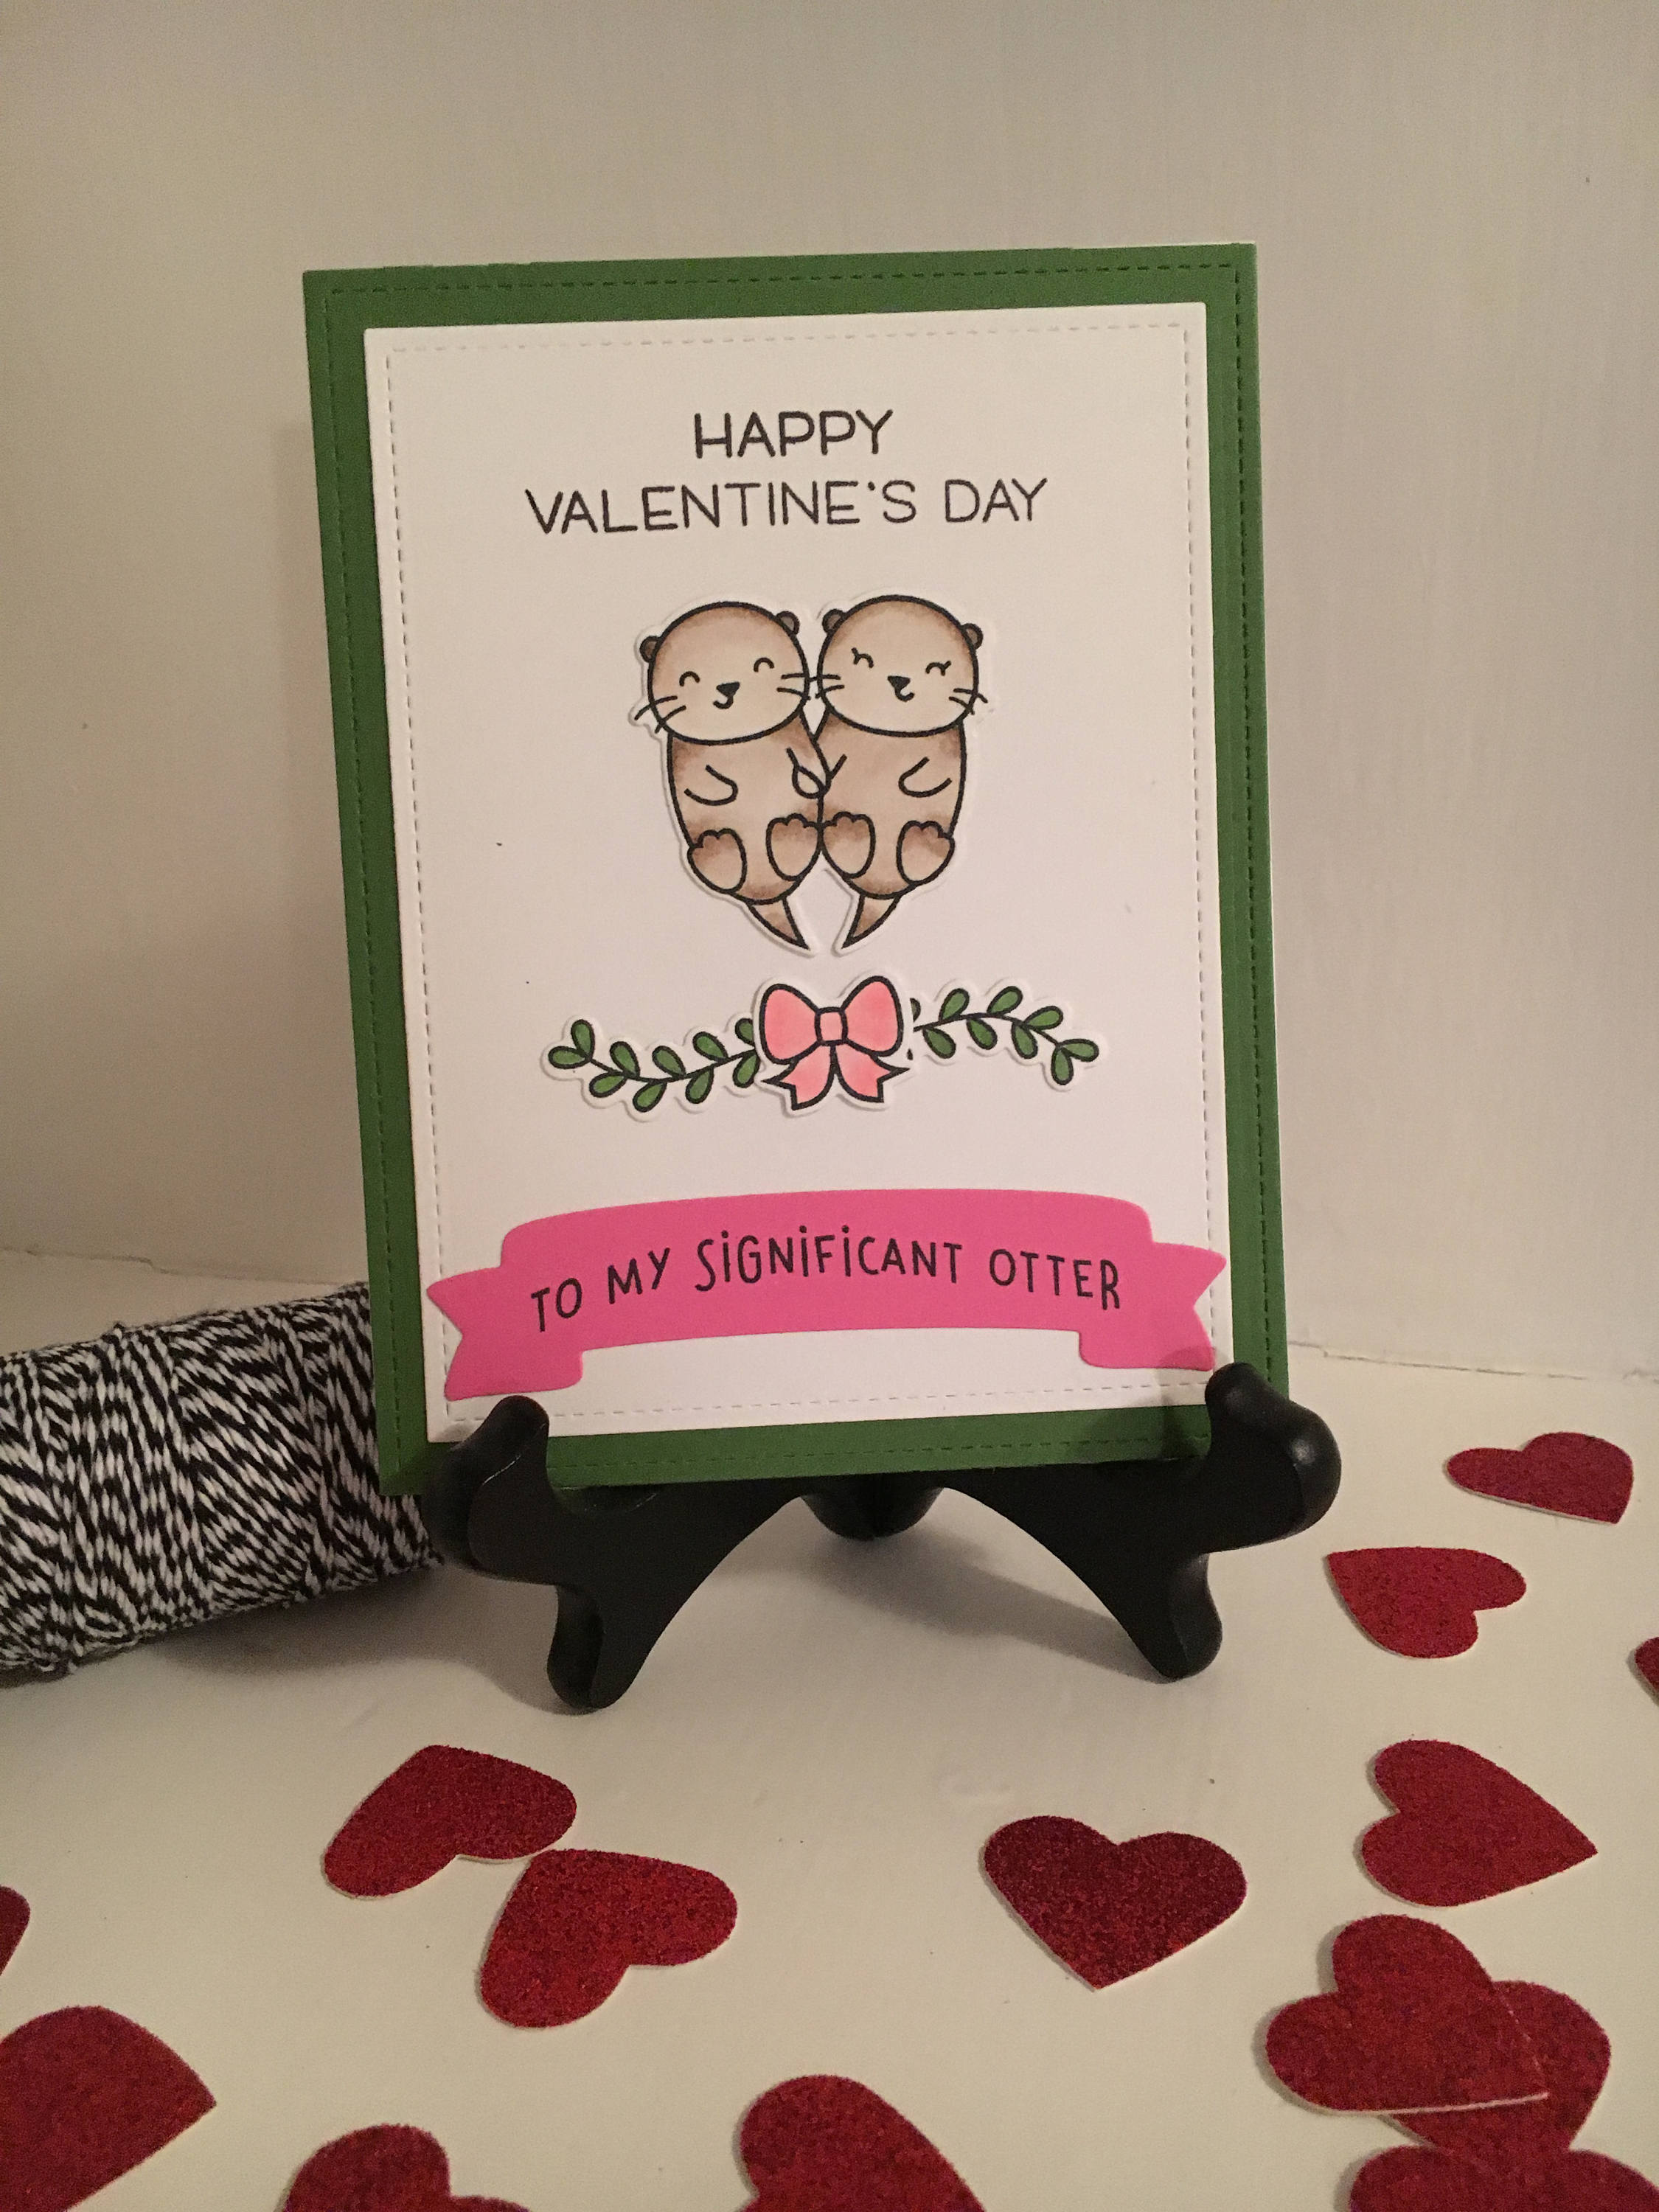 Valentines Day Card To My Significant Otter Funny Valentines Day Card Happy Valentines Day For Boyfriend Girlfriend Husband Or Wife